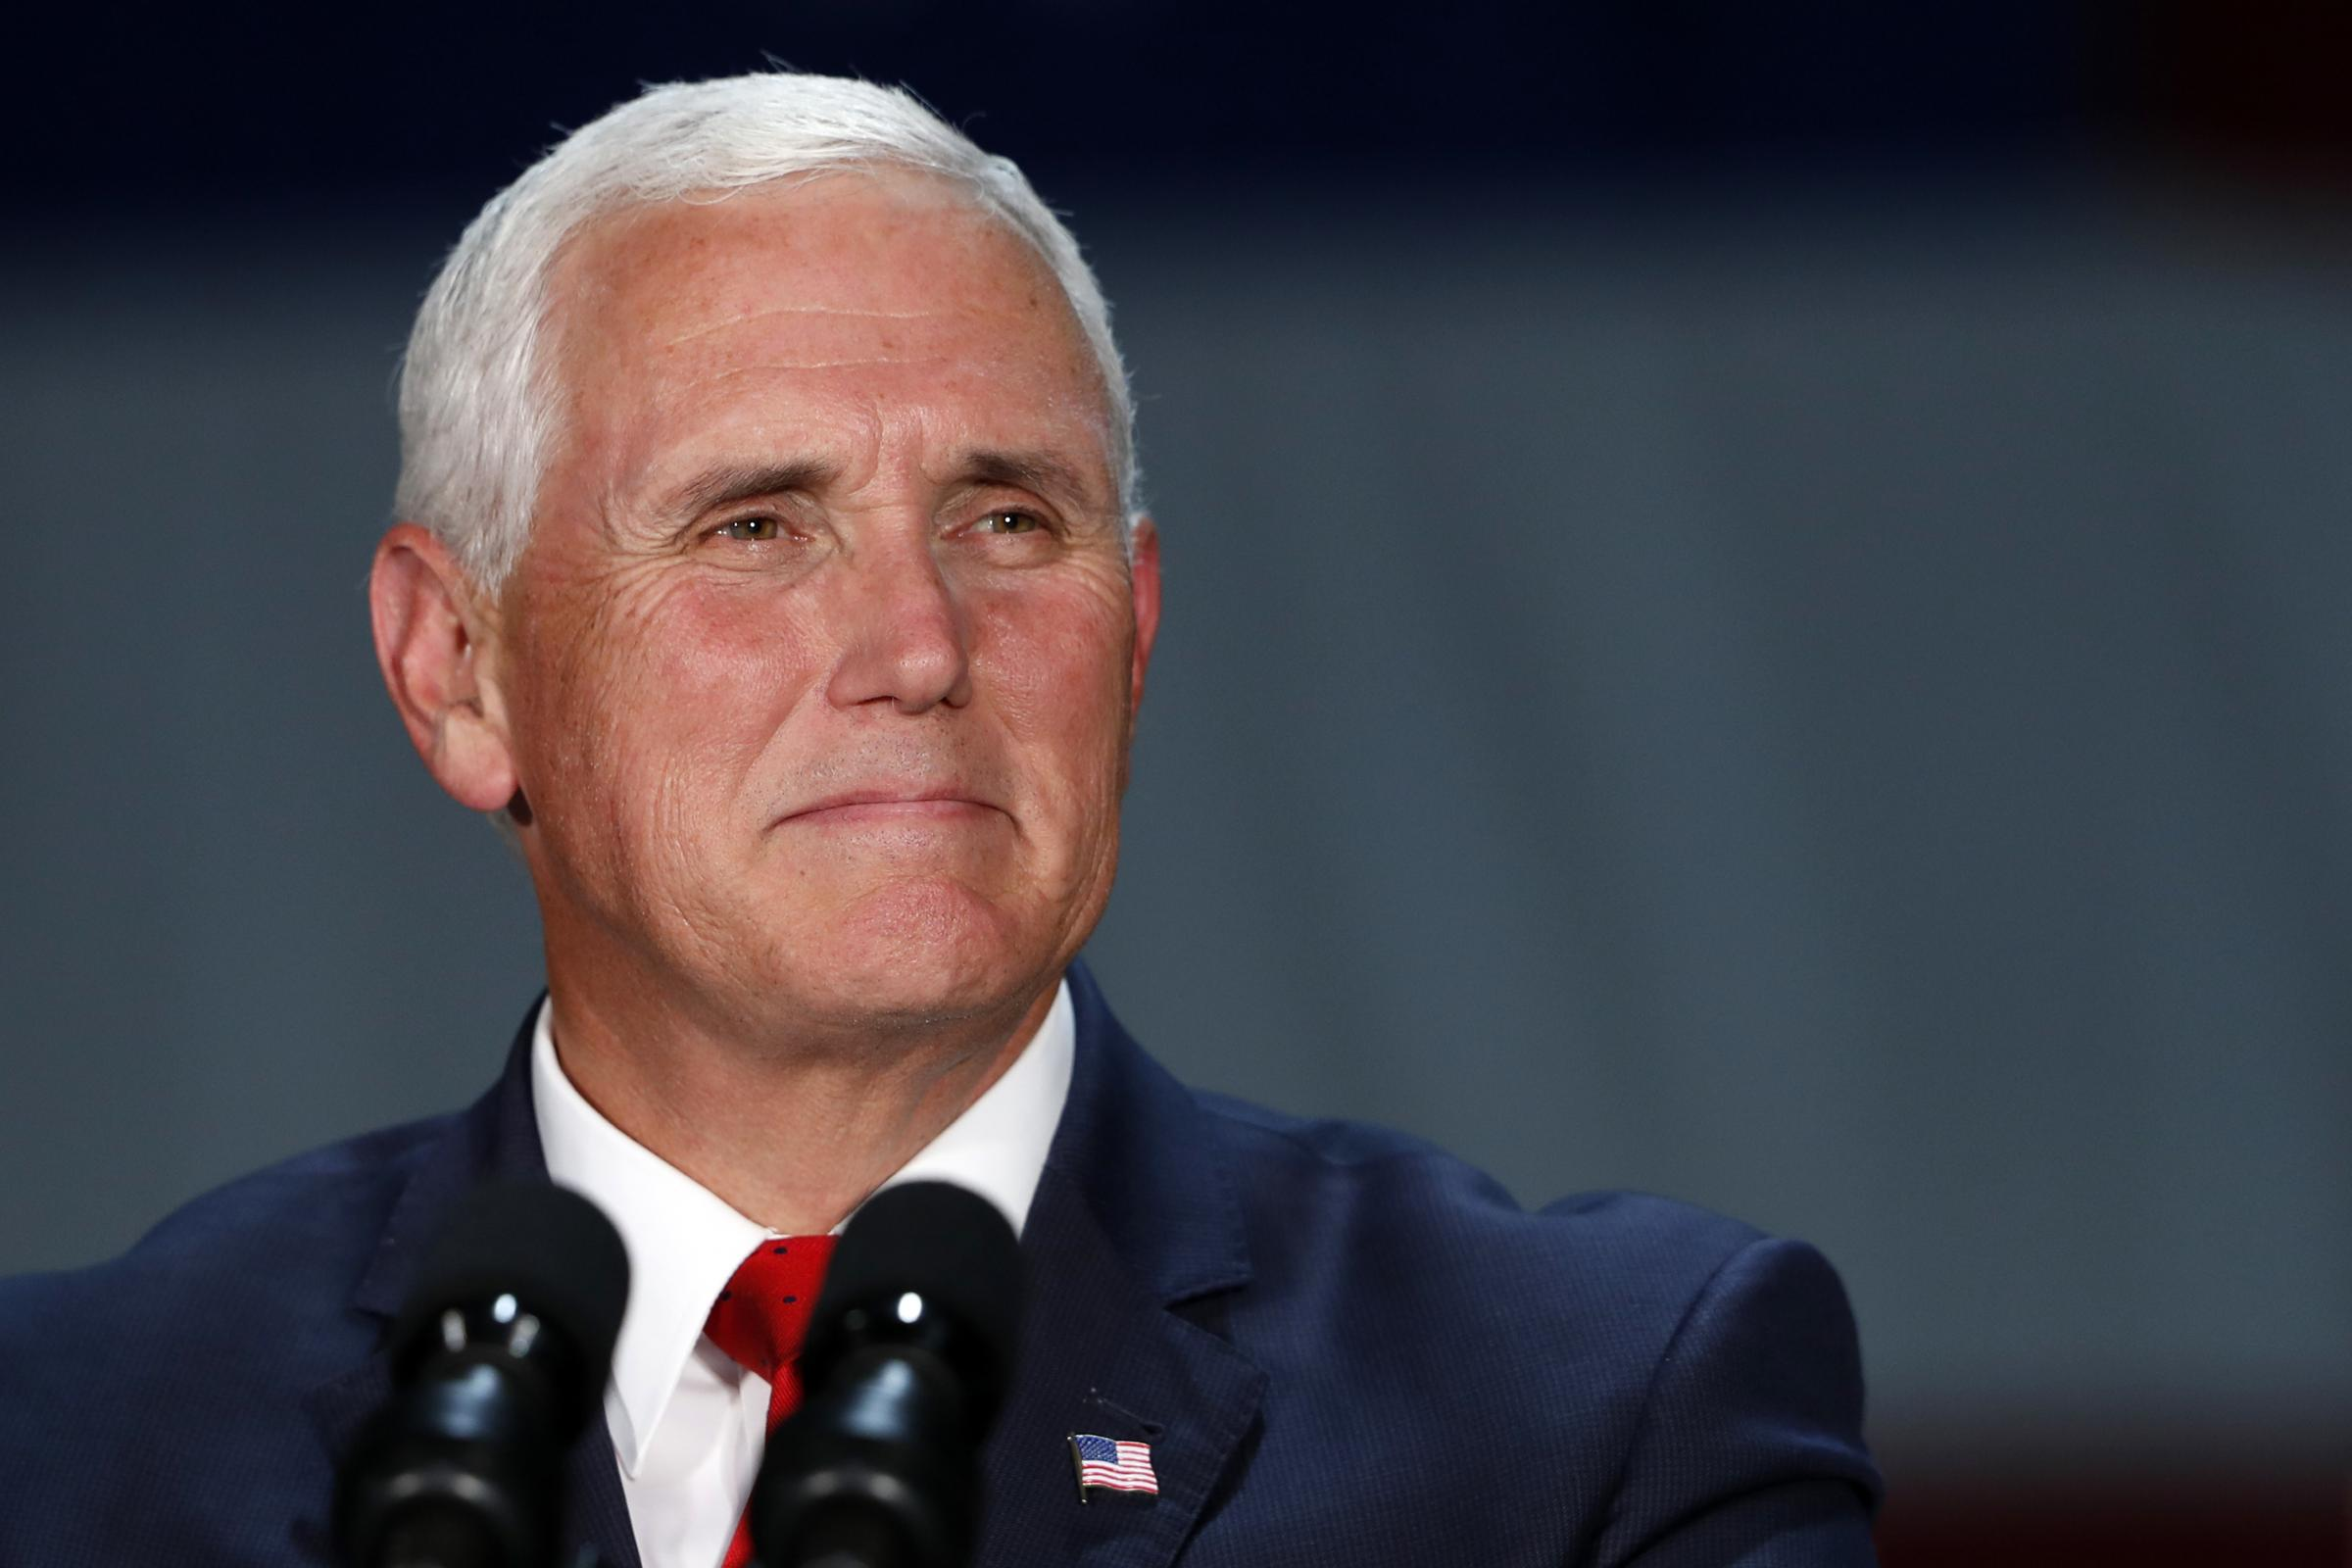 I'll take lie-detector test over unsigned article, says Mike Pence